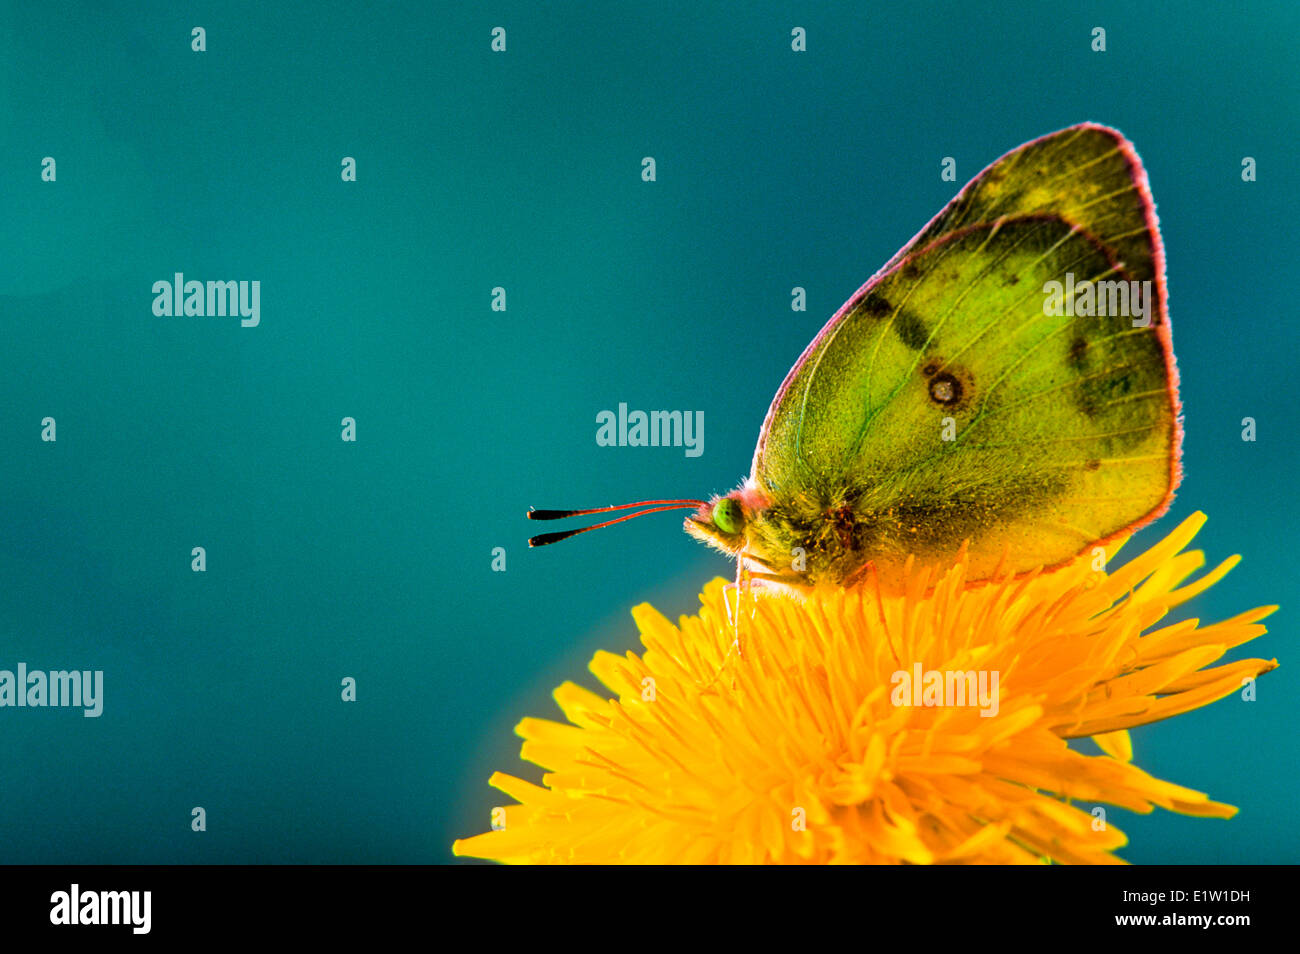 Common or Clouded Sulphur Butterfly, (Colias philodice) ventral view. - Stock Image